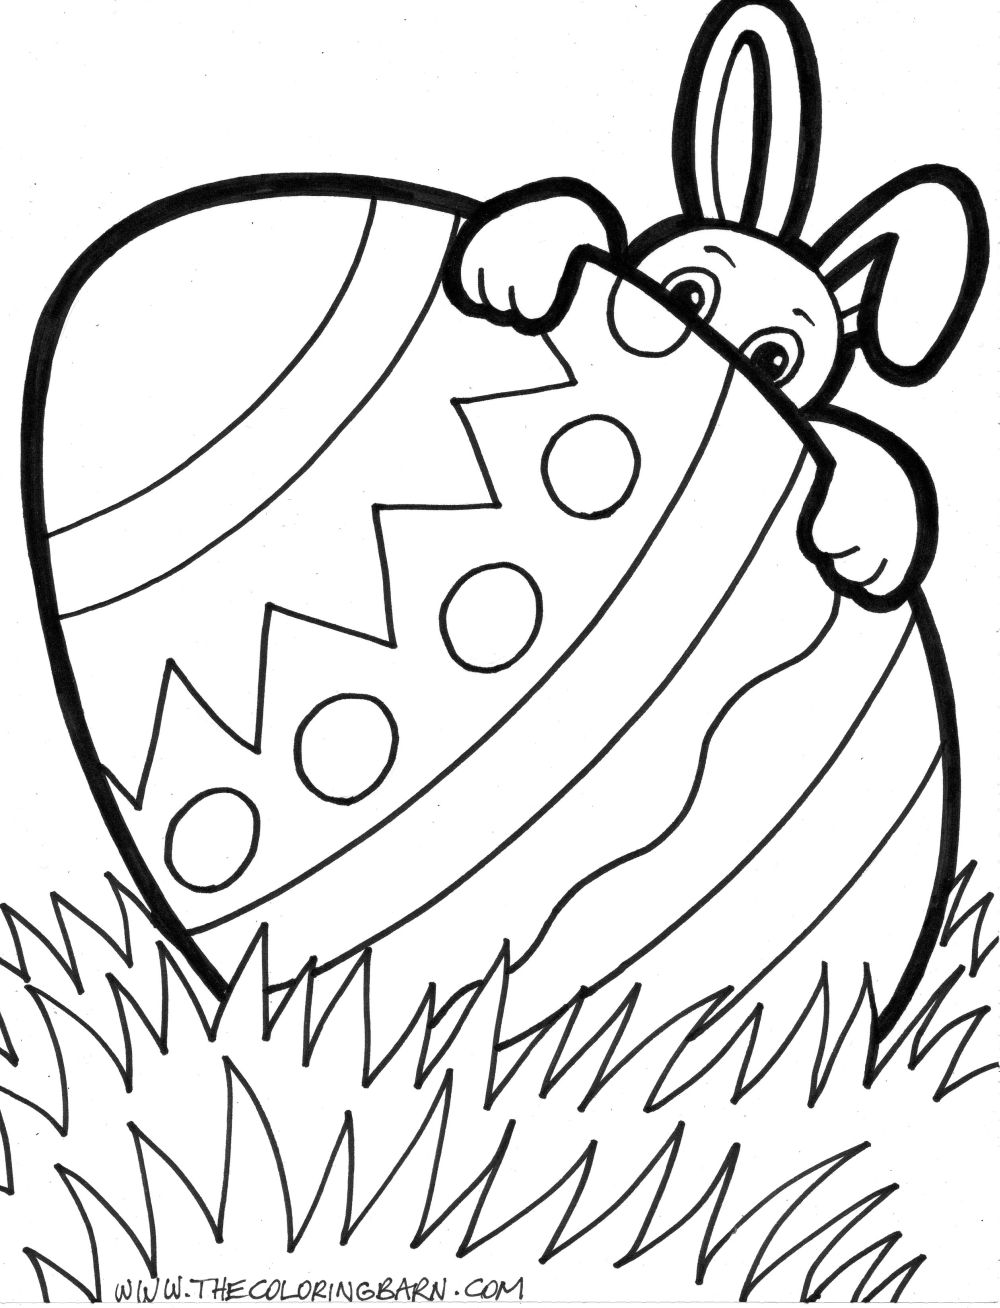 printable coloring pages easter eggs - photo#45